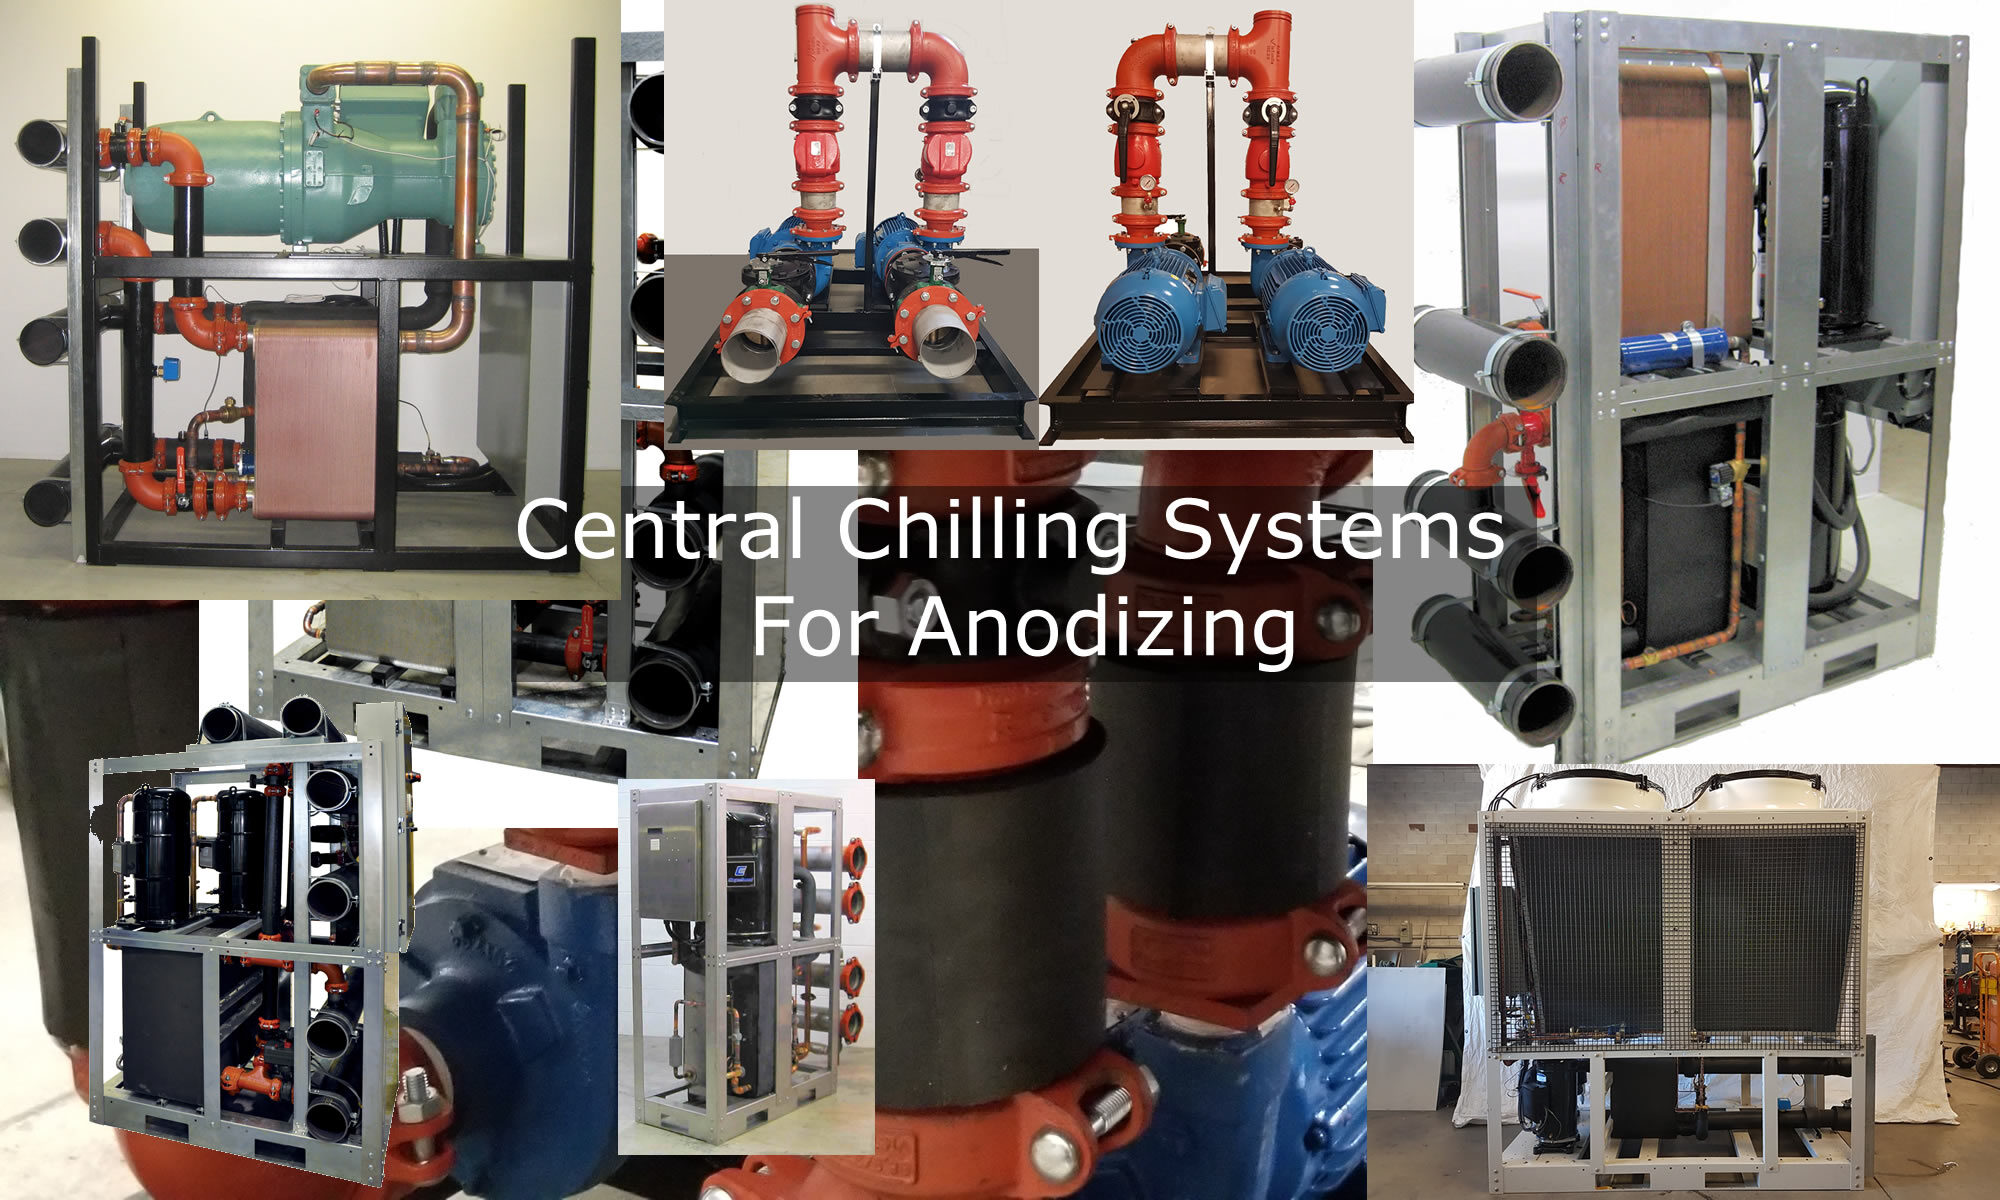 Central Chilling Systems For Anodizing